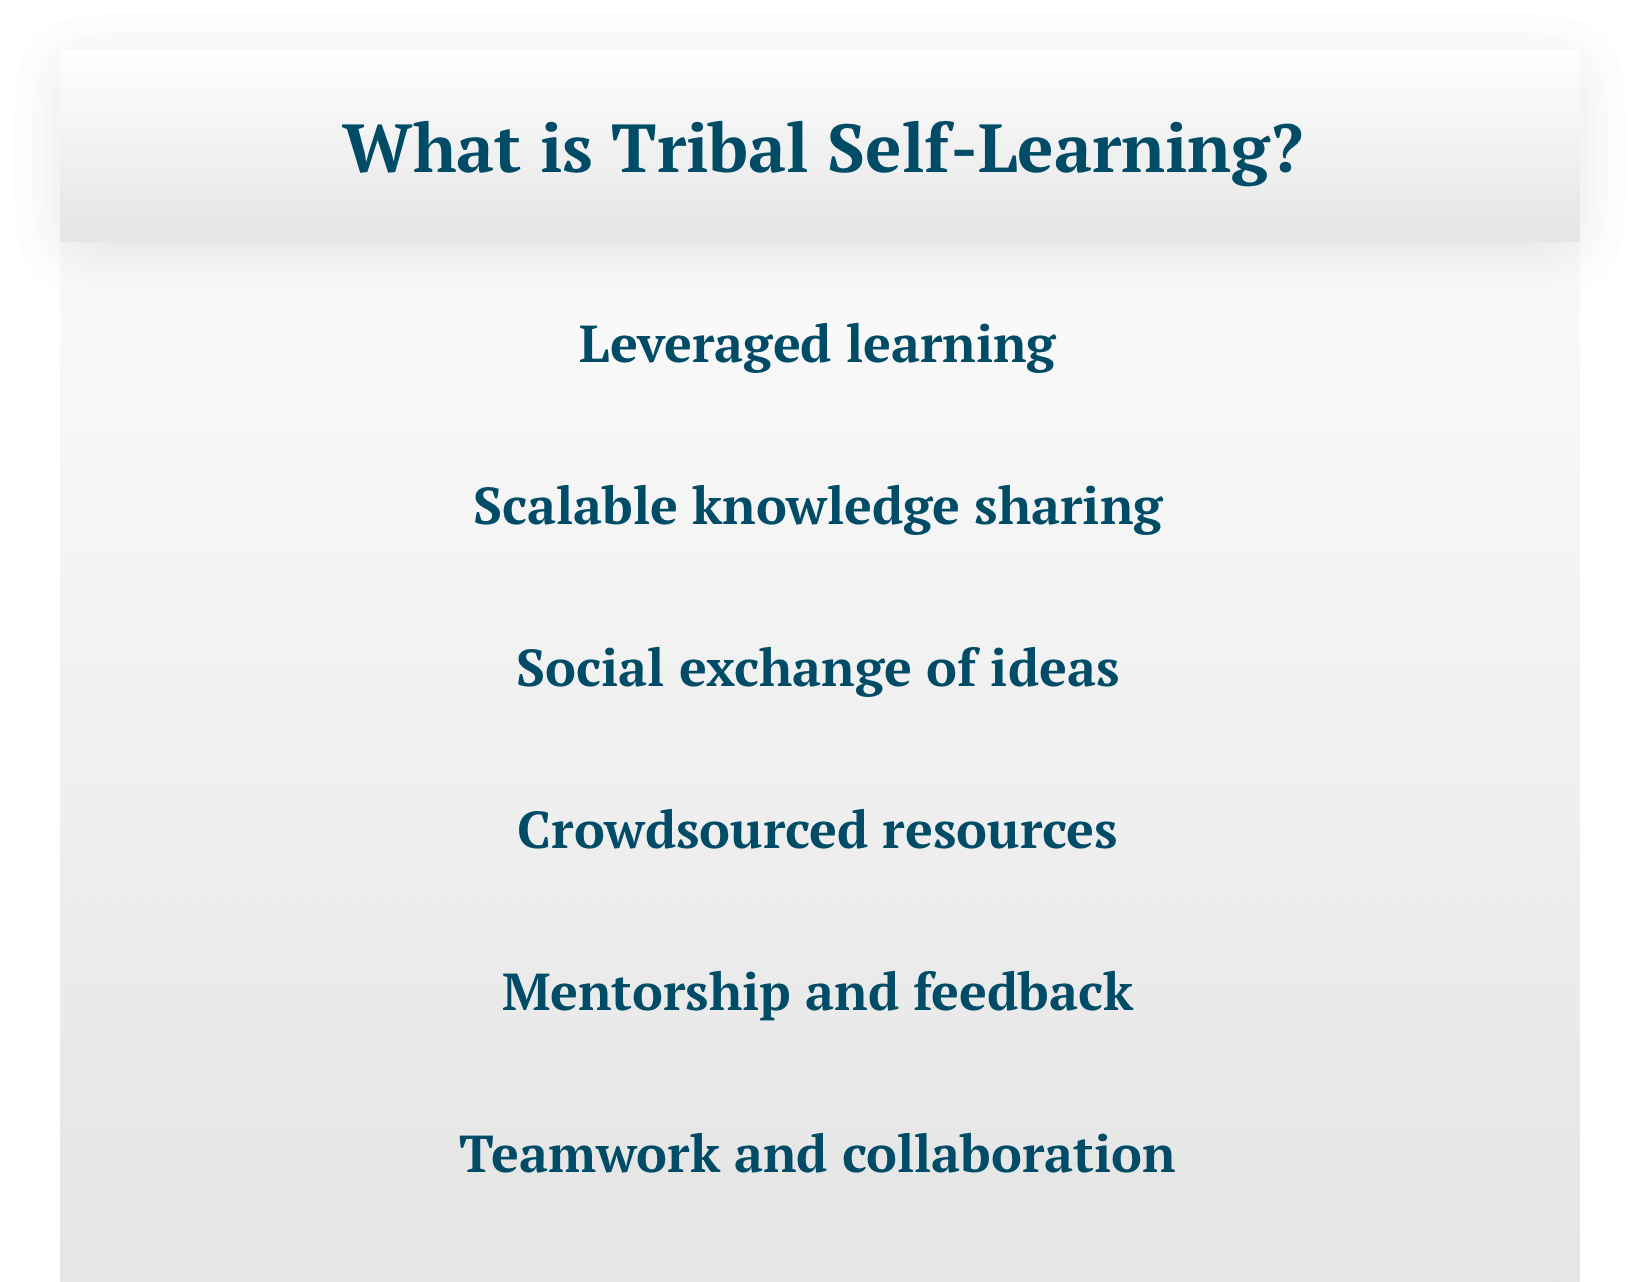 "Text-only image titled ""What is Tribal Self-Learning"" with the following text: Leveraged learning; Scalable knowledge sharing; Social exchange of ideas; Crowdsourced resources; Mentorship and feedback; Teamwork and collaboration."